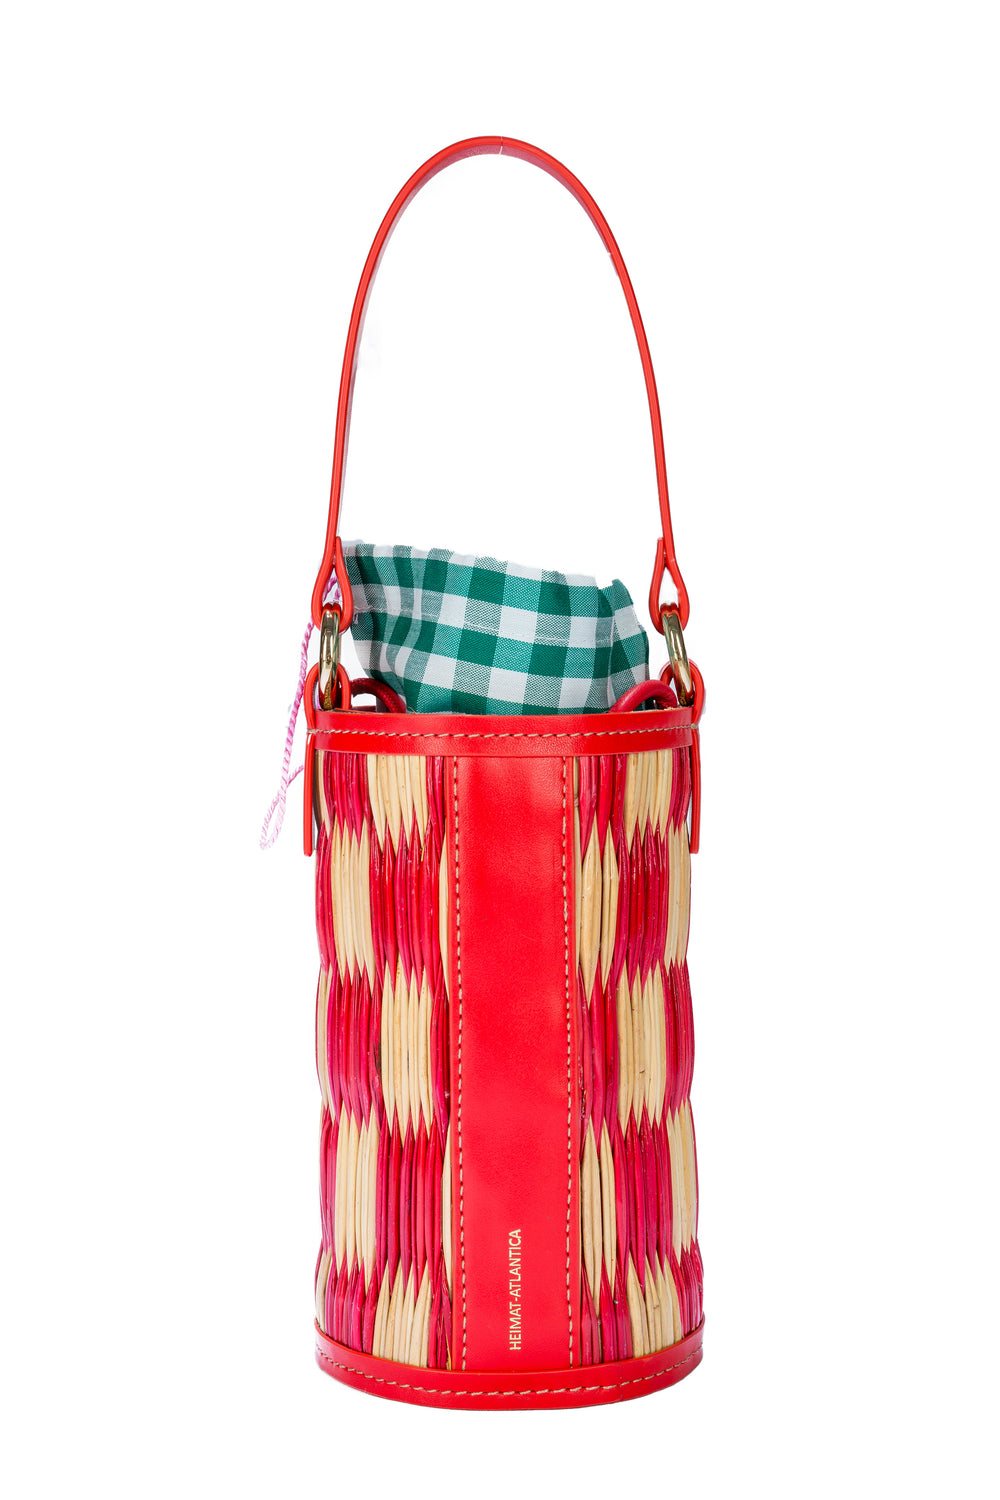 Cupid bag red